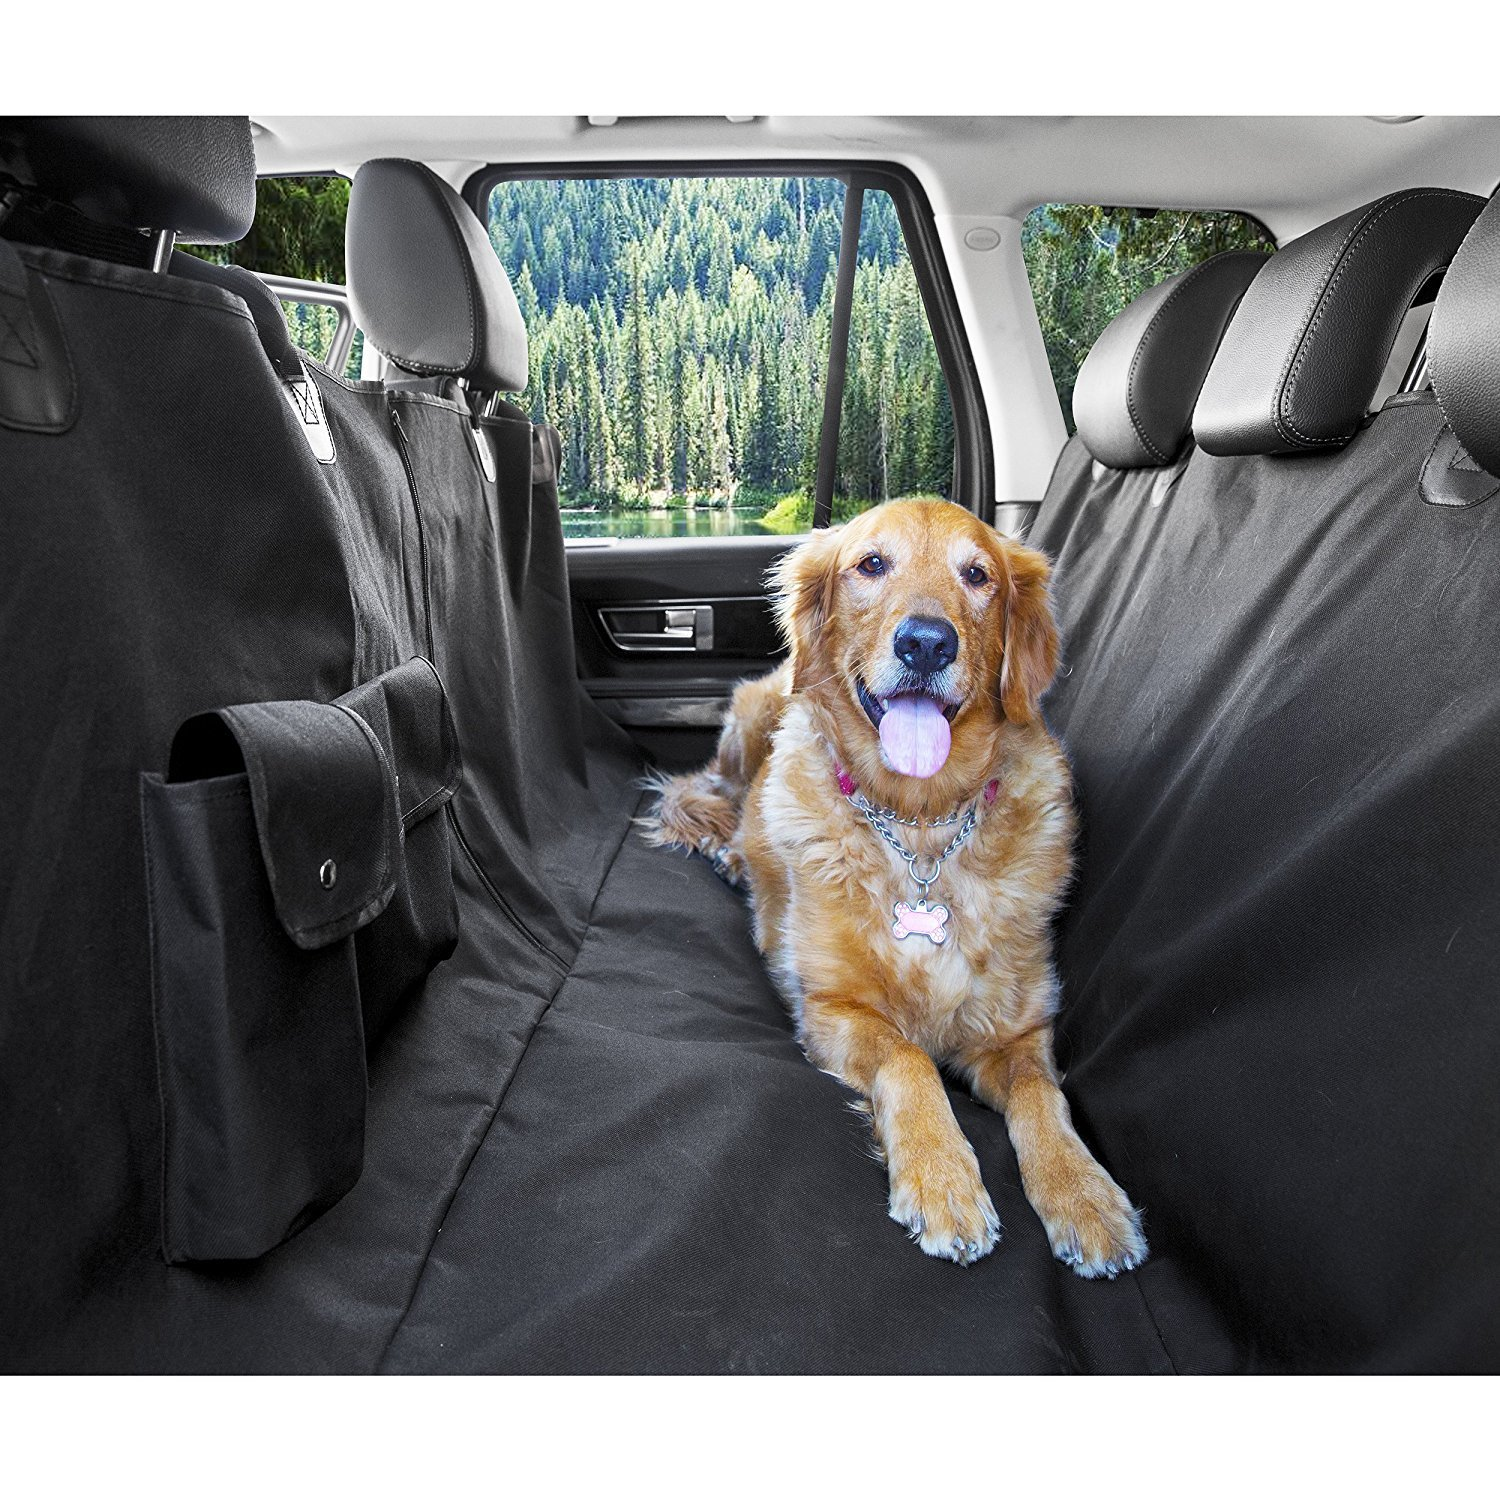 protector s p rear van car cat seat of back mat waterproof dog picture hammock pet bench cover